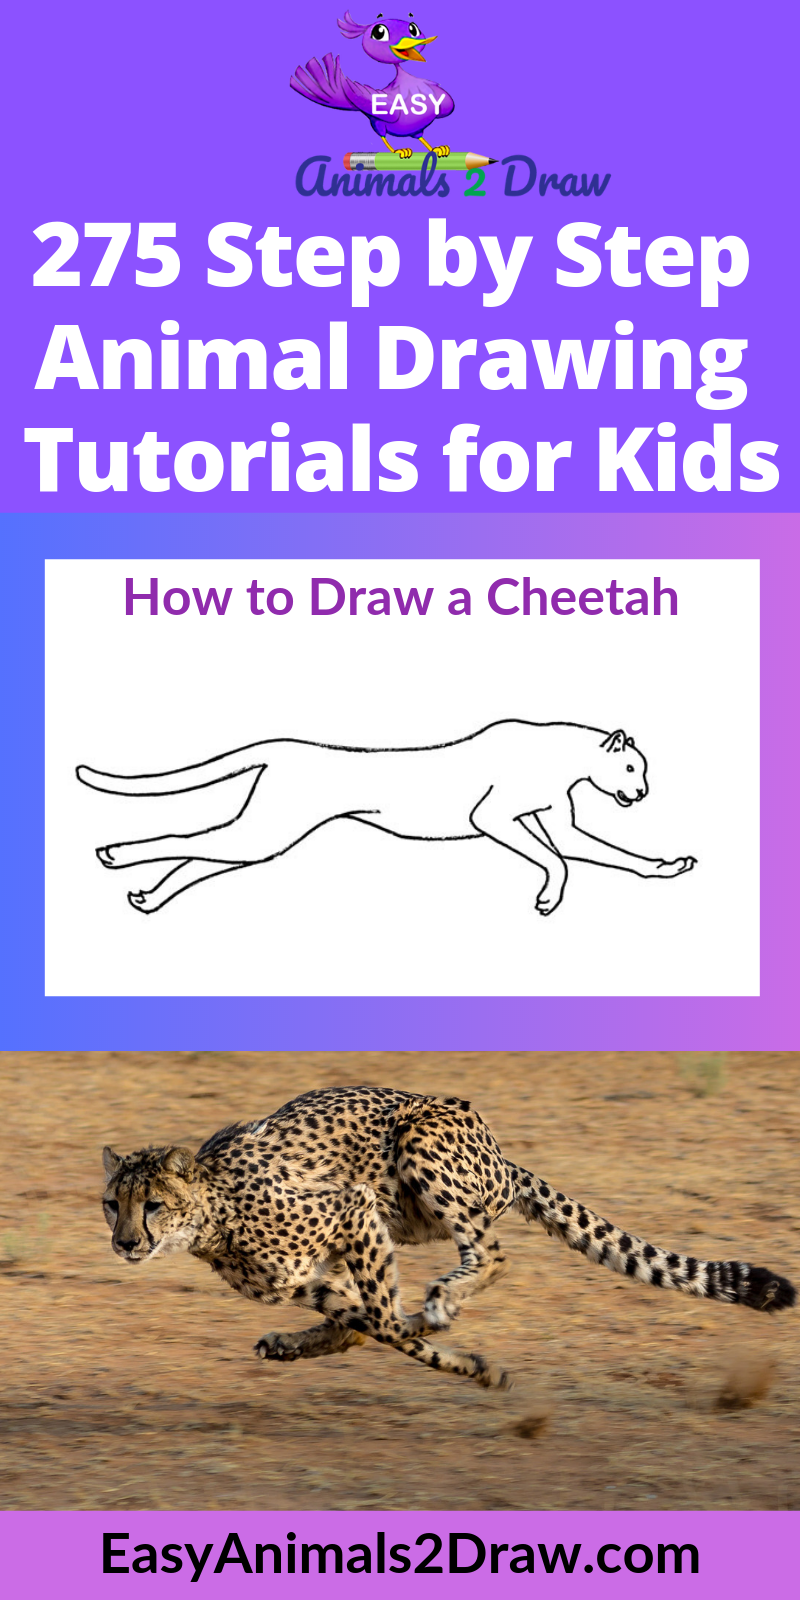 How to draw a Cheetah running step by step